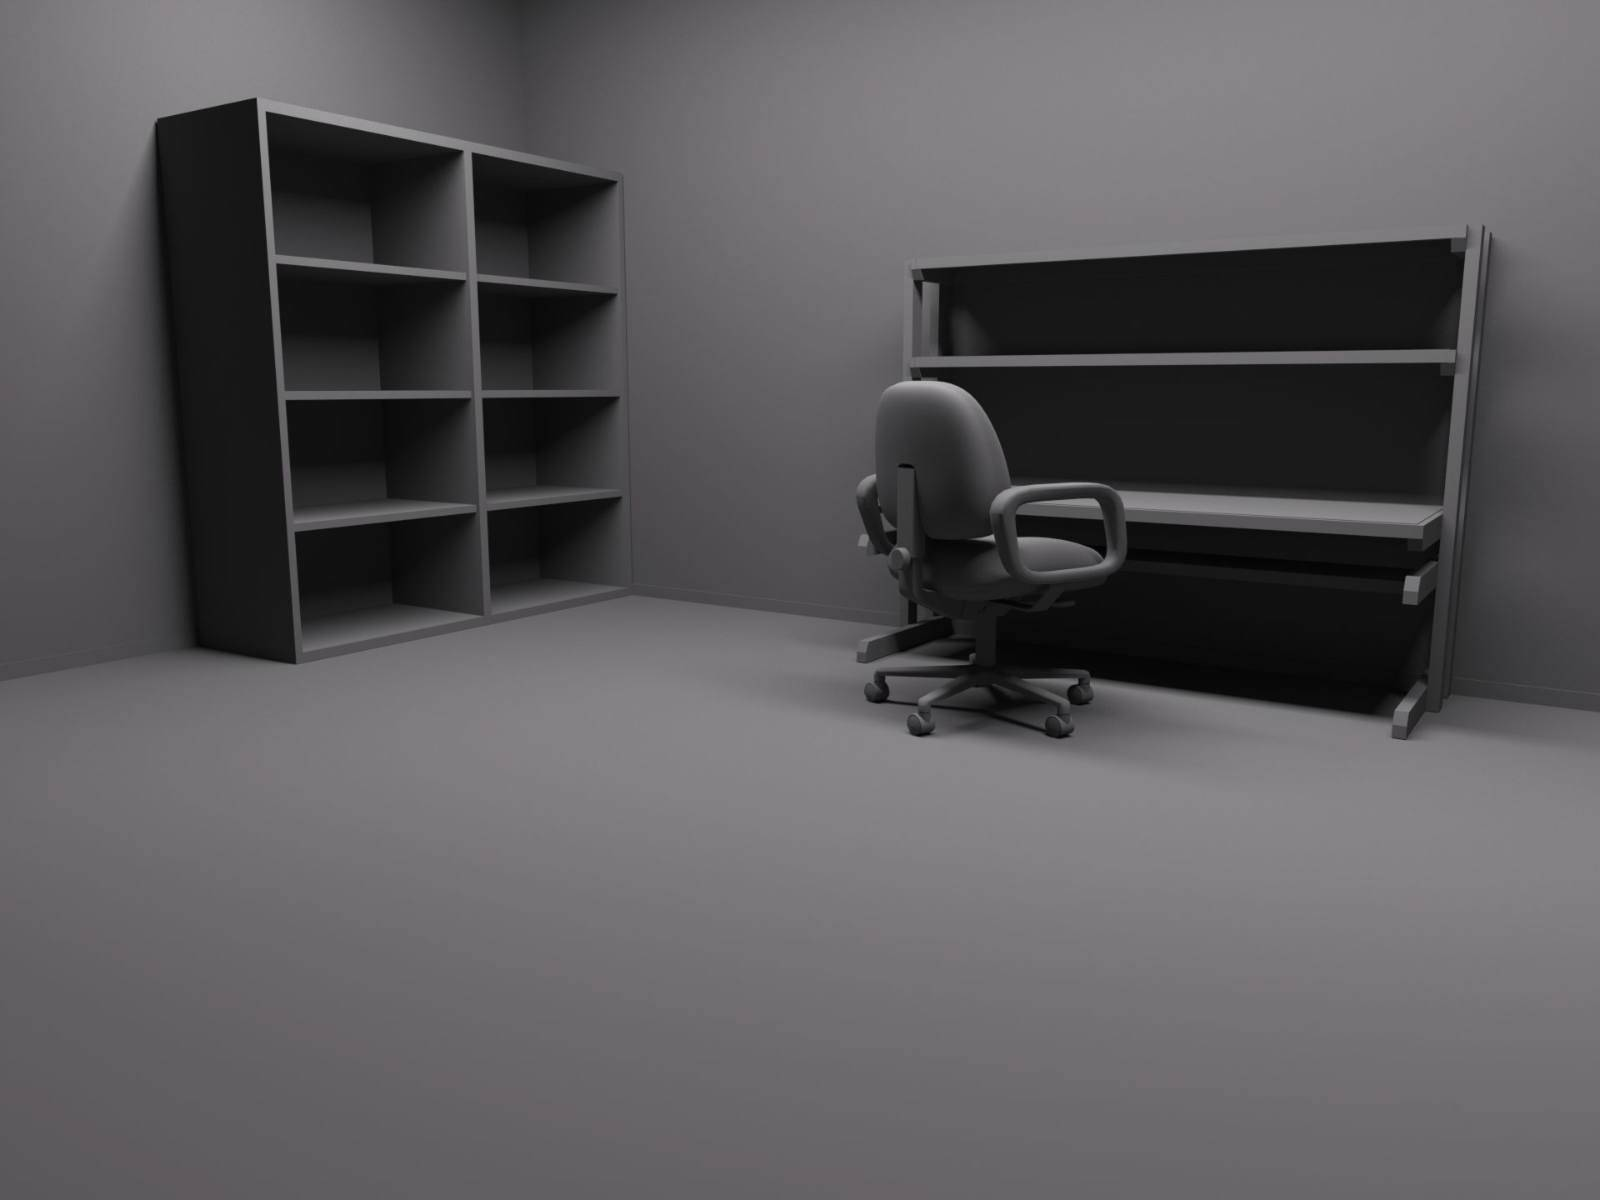 Office Wallpaper Hd Images Pictures   Becuo 1600x1200